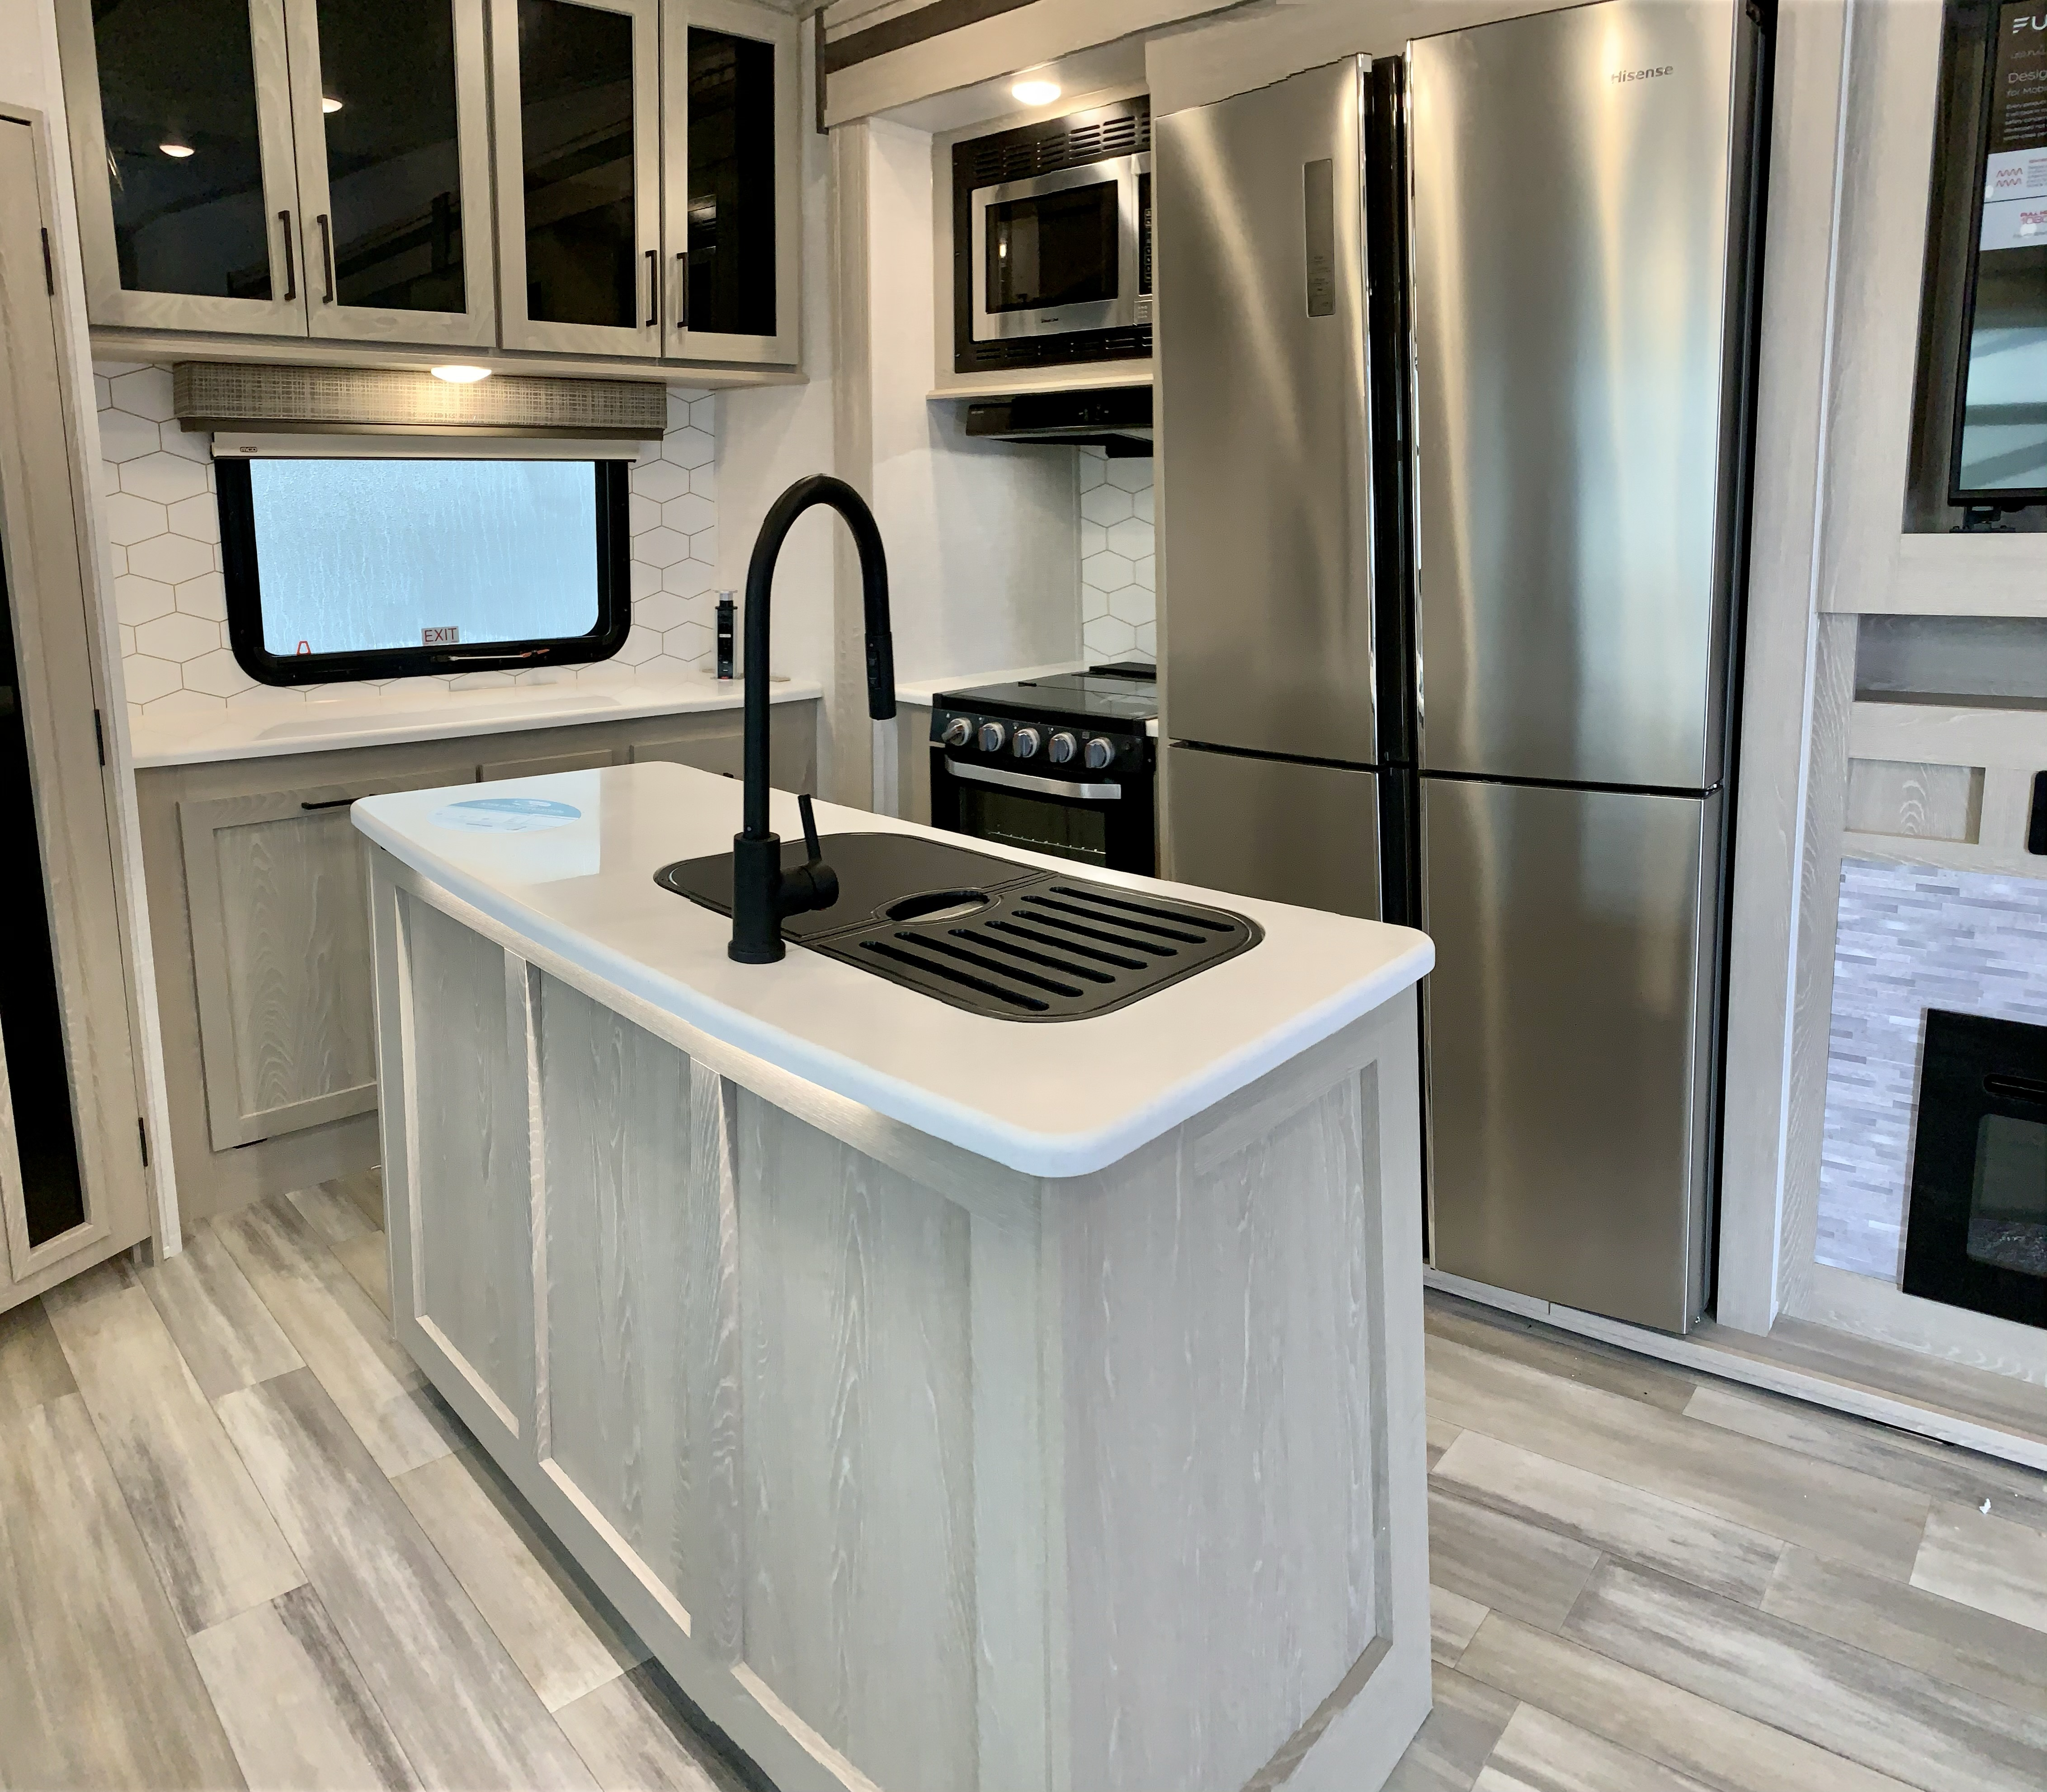 2021 FOREST RIVER FLAGSTAFF F529RKB NEW FIFTH WHEEL FOR SALE HALIFAX NS